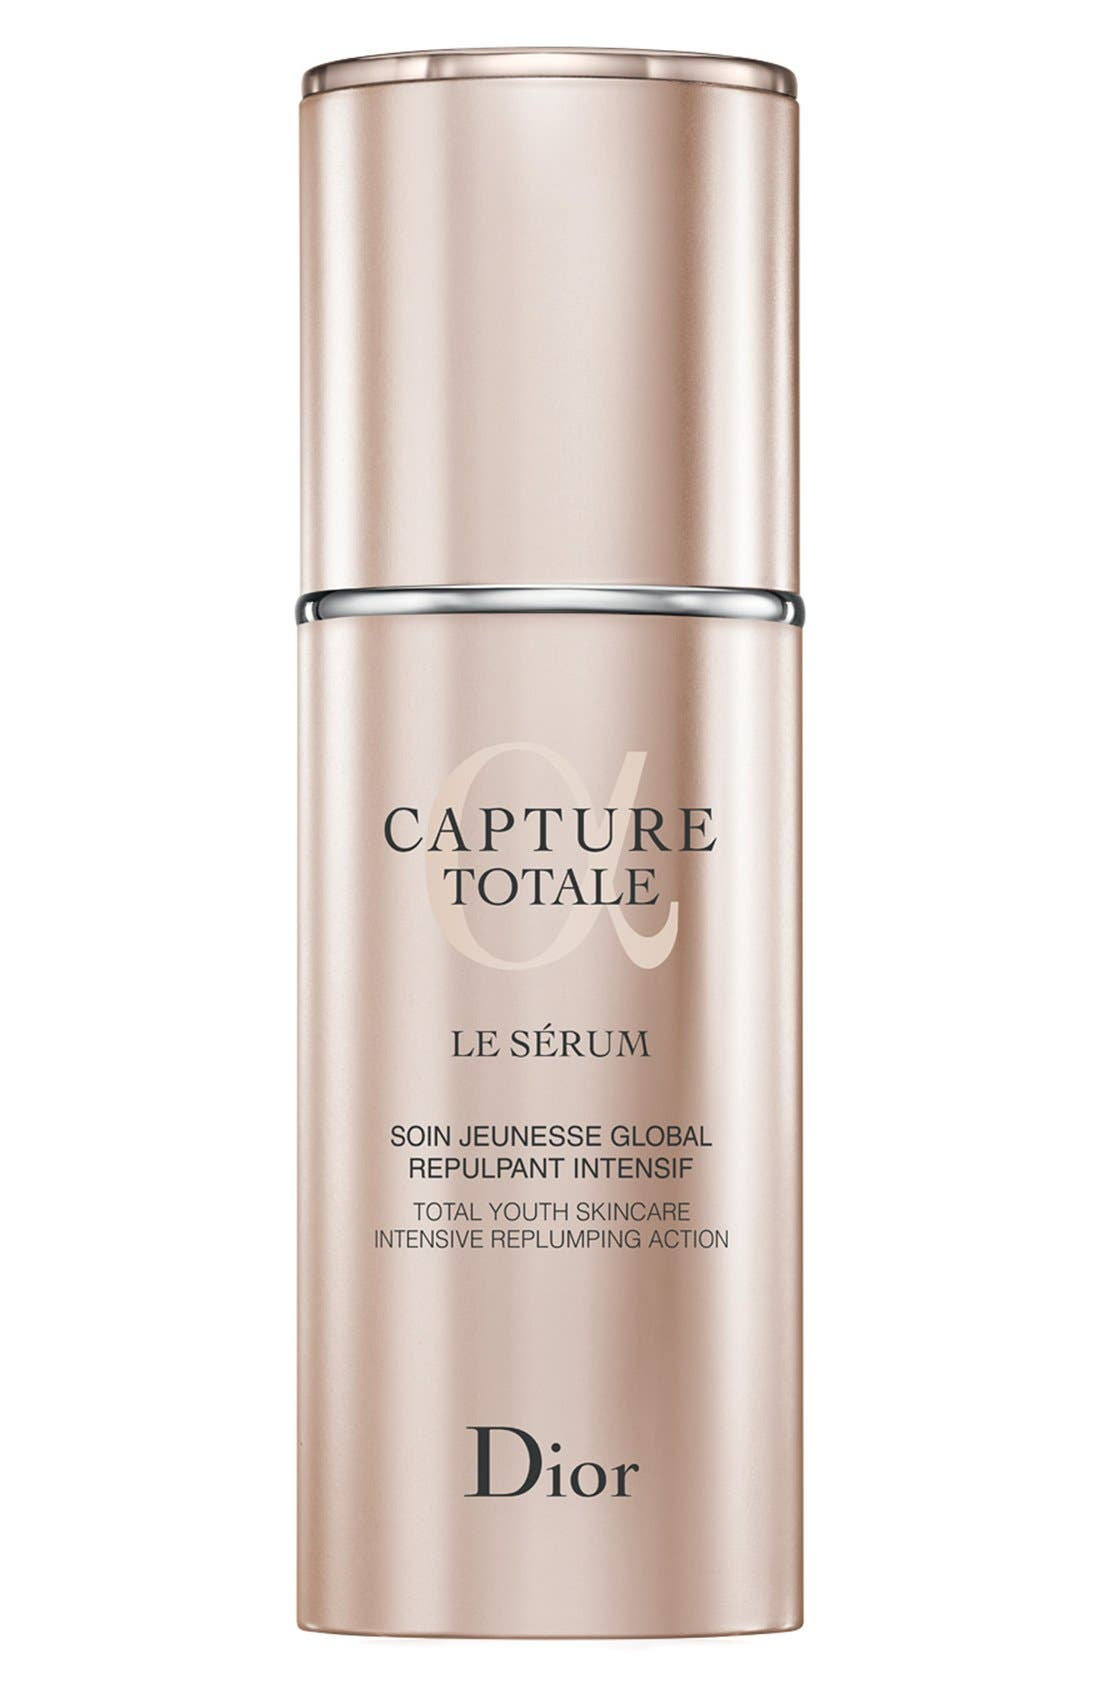 Dior 'Capture Totale' Le Serum